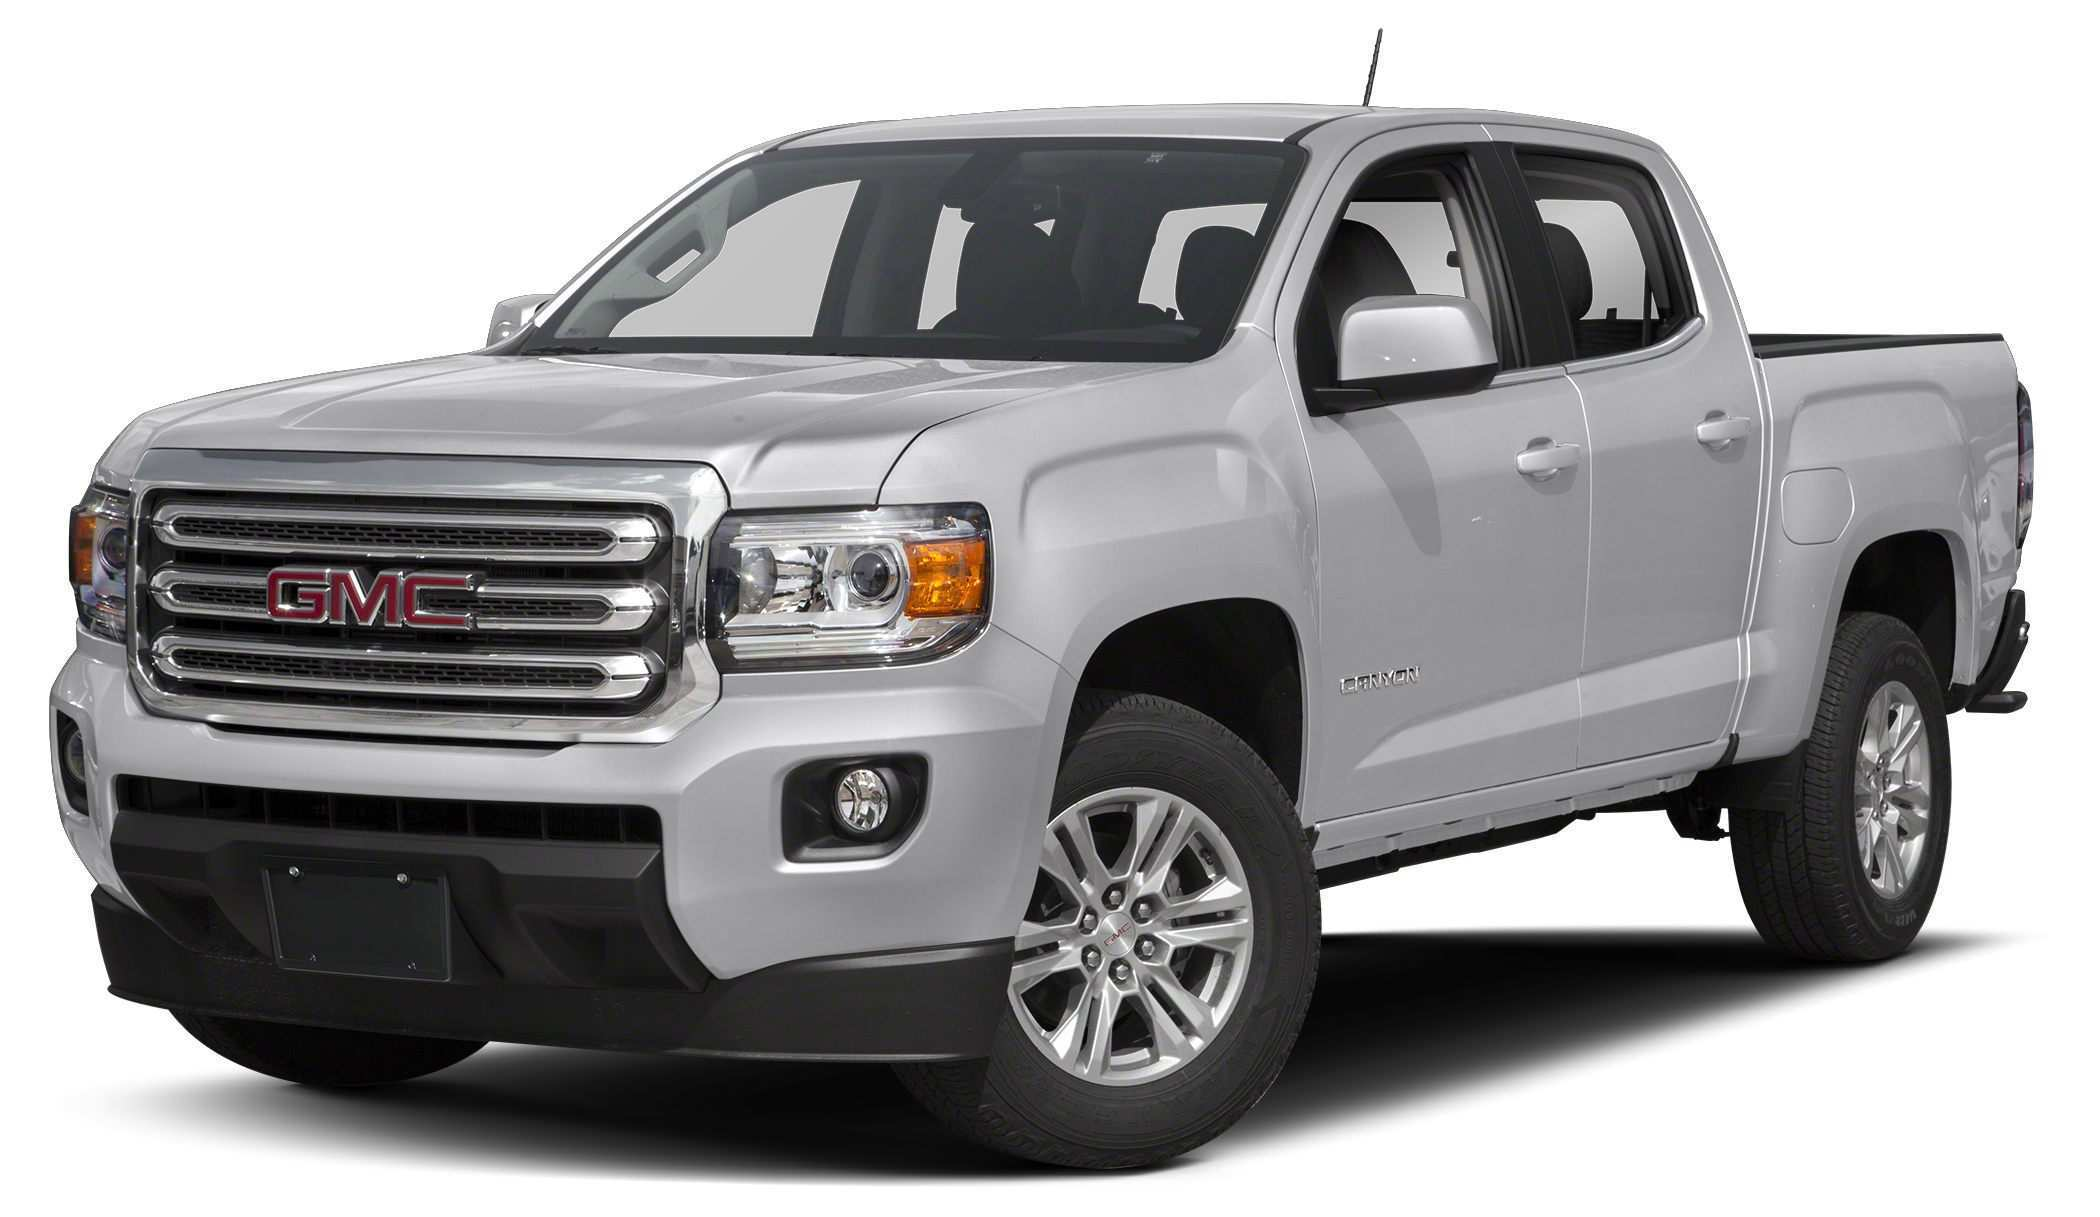 49 The 2019 Chevrolet Colorado Update Price And Review History with 2019 Chevrolet Colorado Update Price And Review